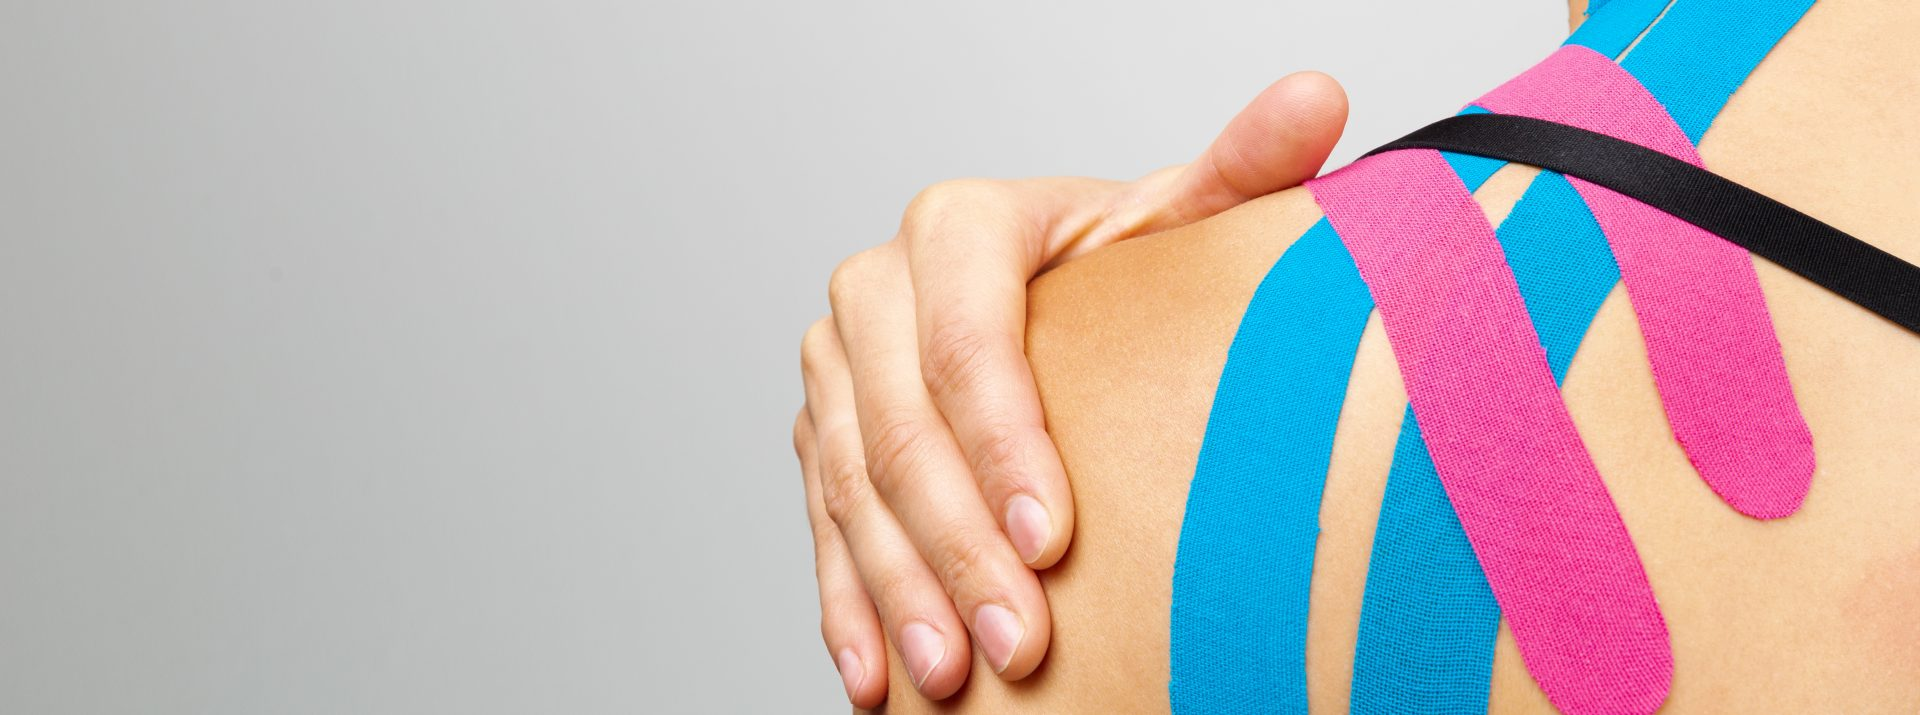 Woman with her hand on the shoulder testing the effect of Kinesio tape applied to her back by a physio